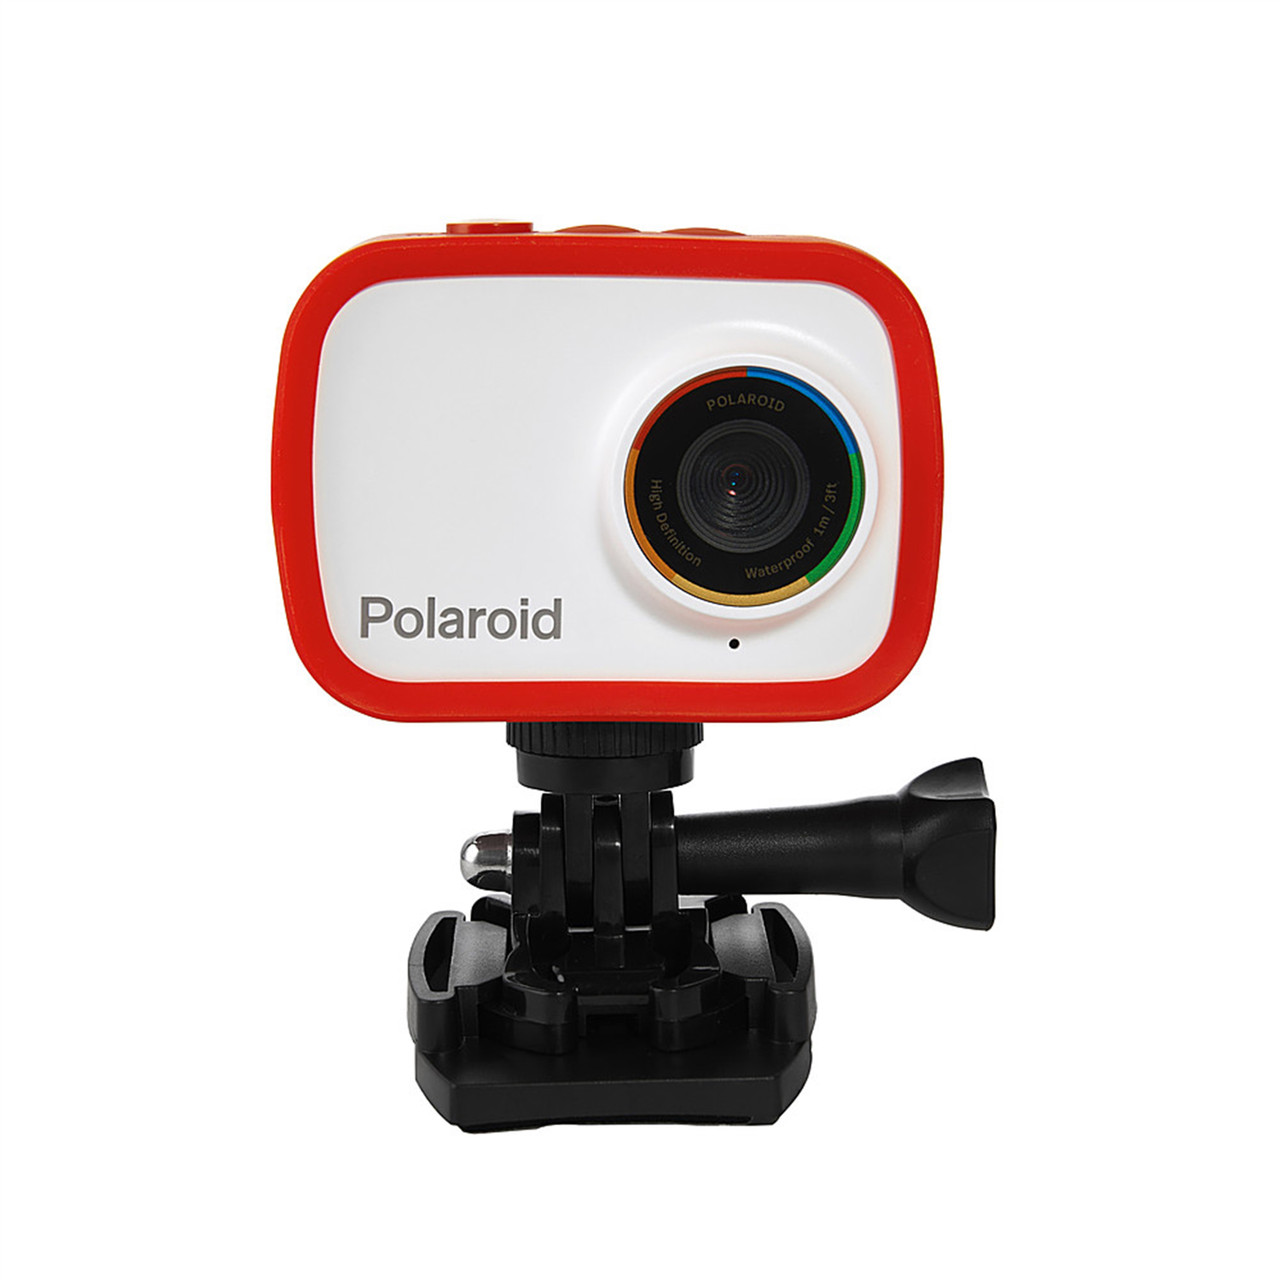 Polaroid Underwater Camera 18mp 4K UHD with LCD Display and USB Rechargeable Digital